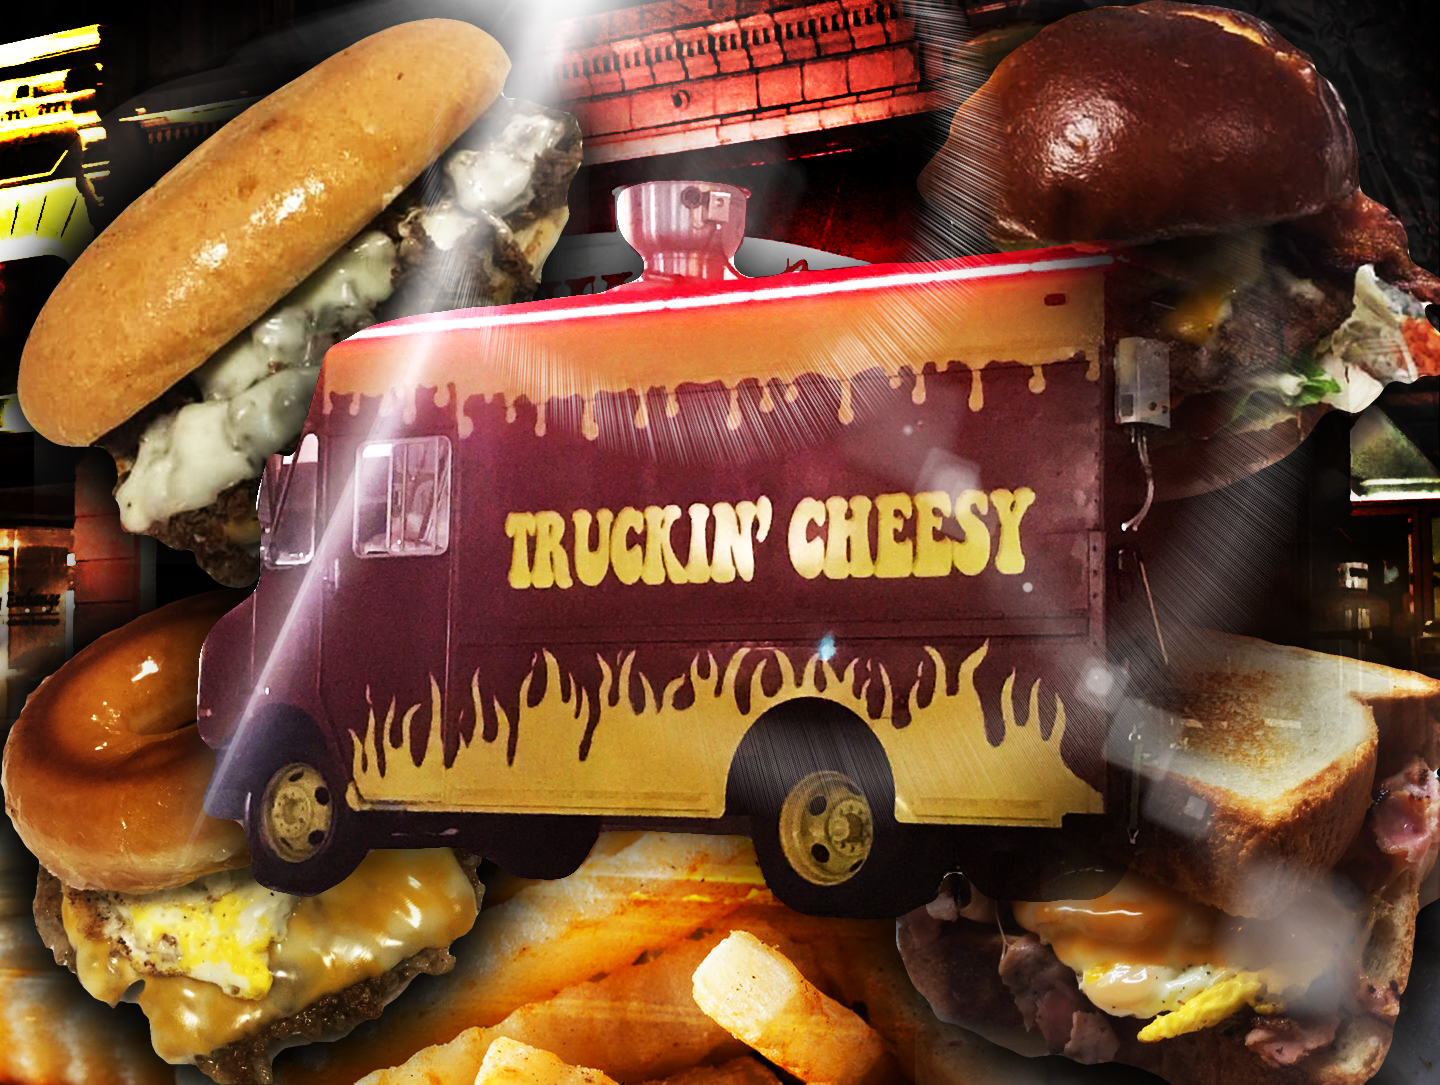 Huntington Welcomes New Food Truck, Truckin' Cheesy